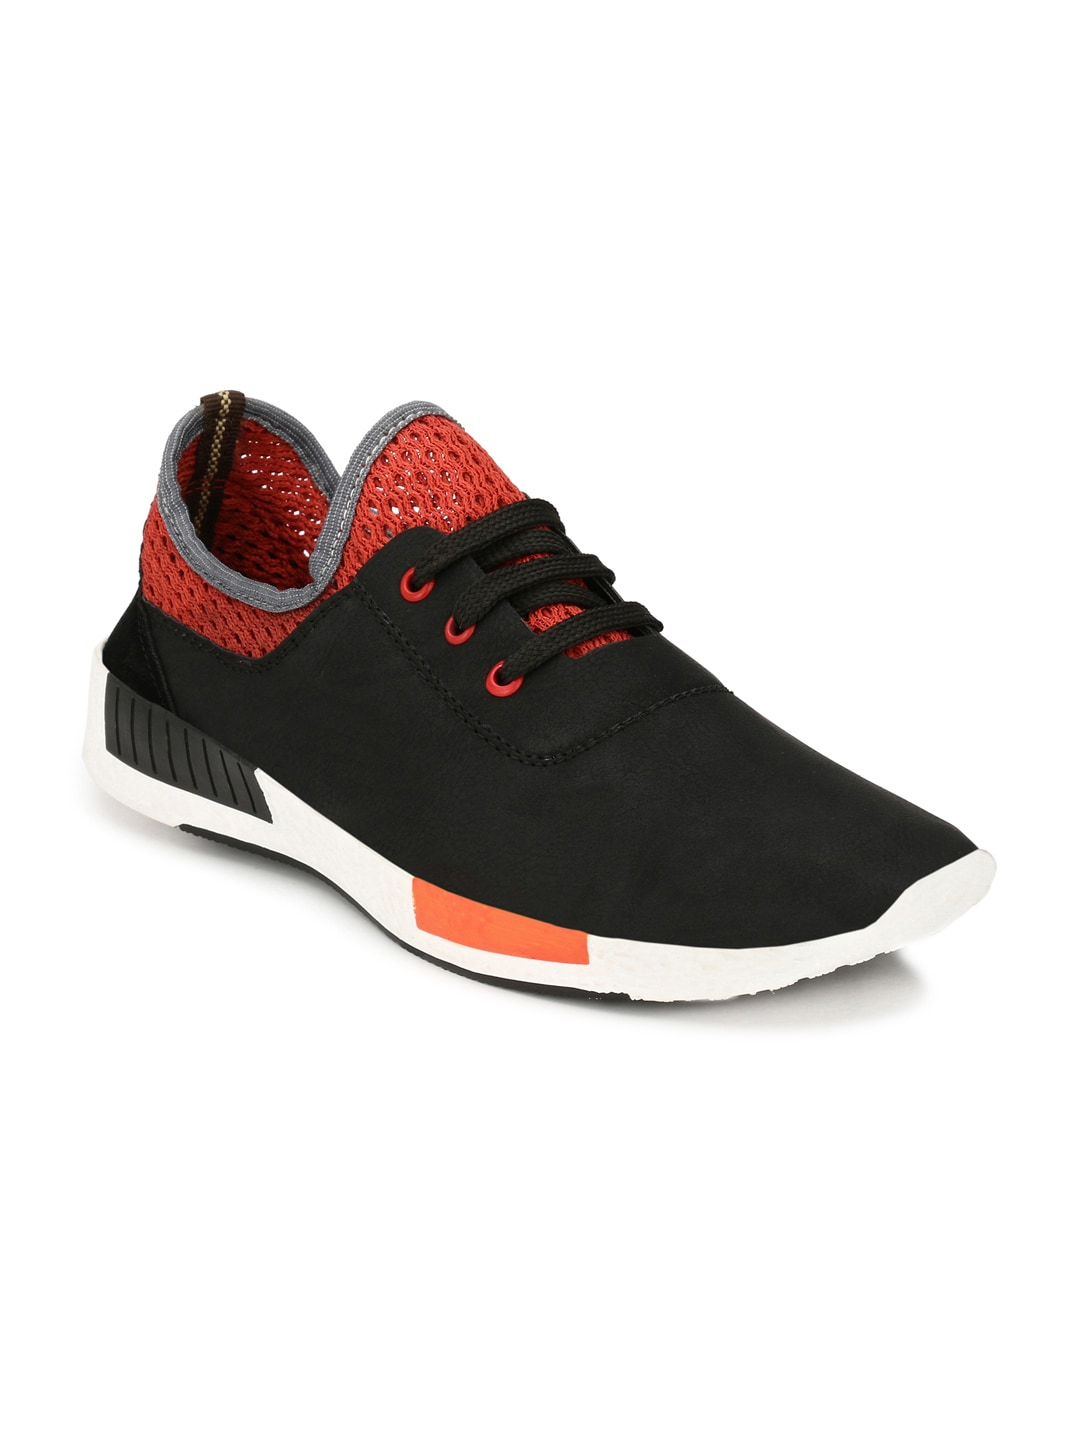 Mactree Men Black Sneakers image